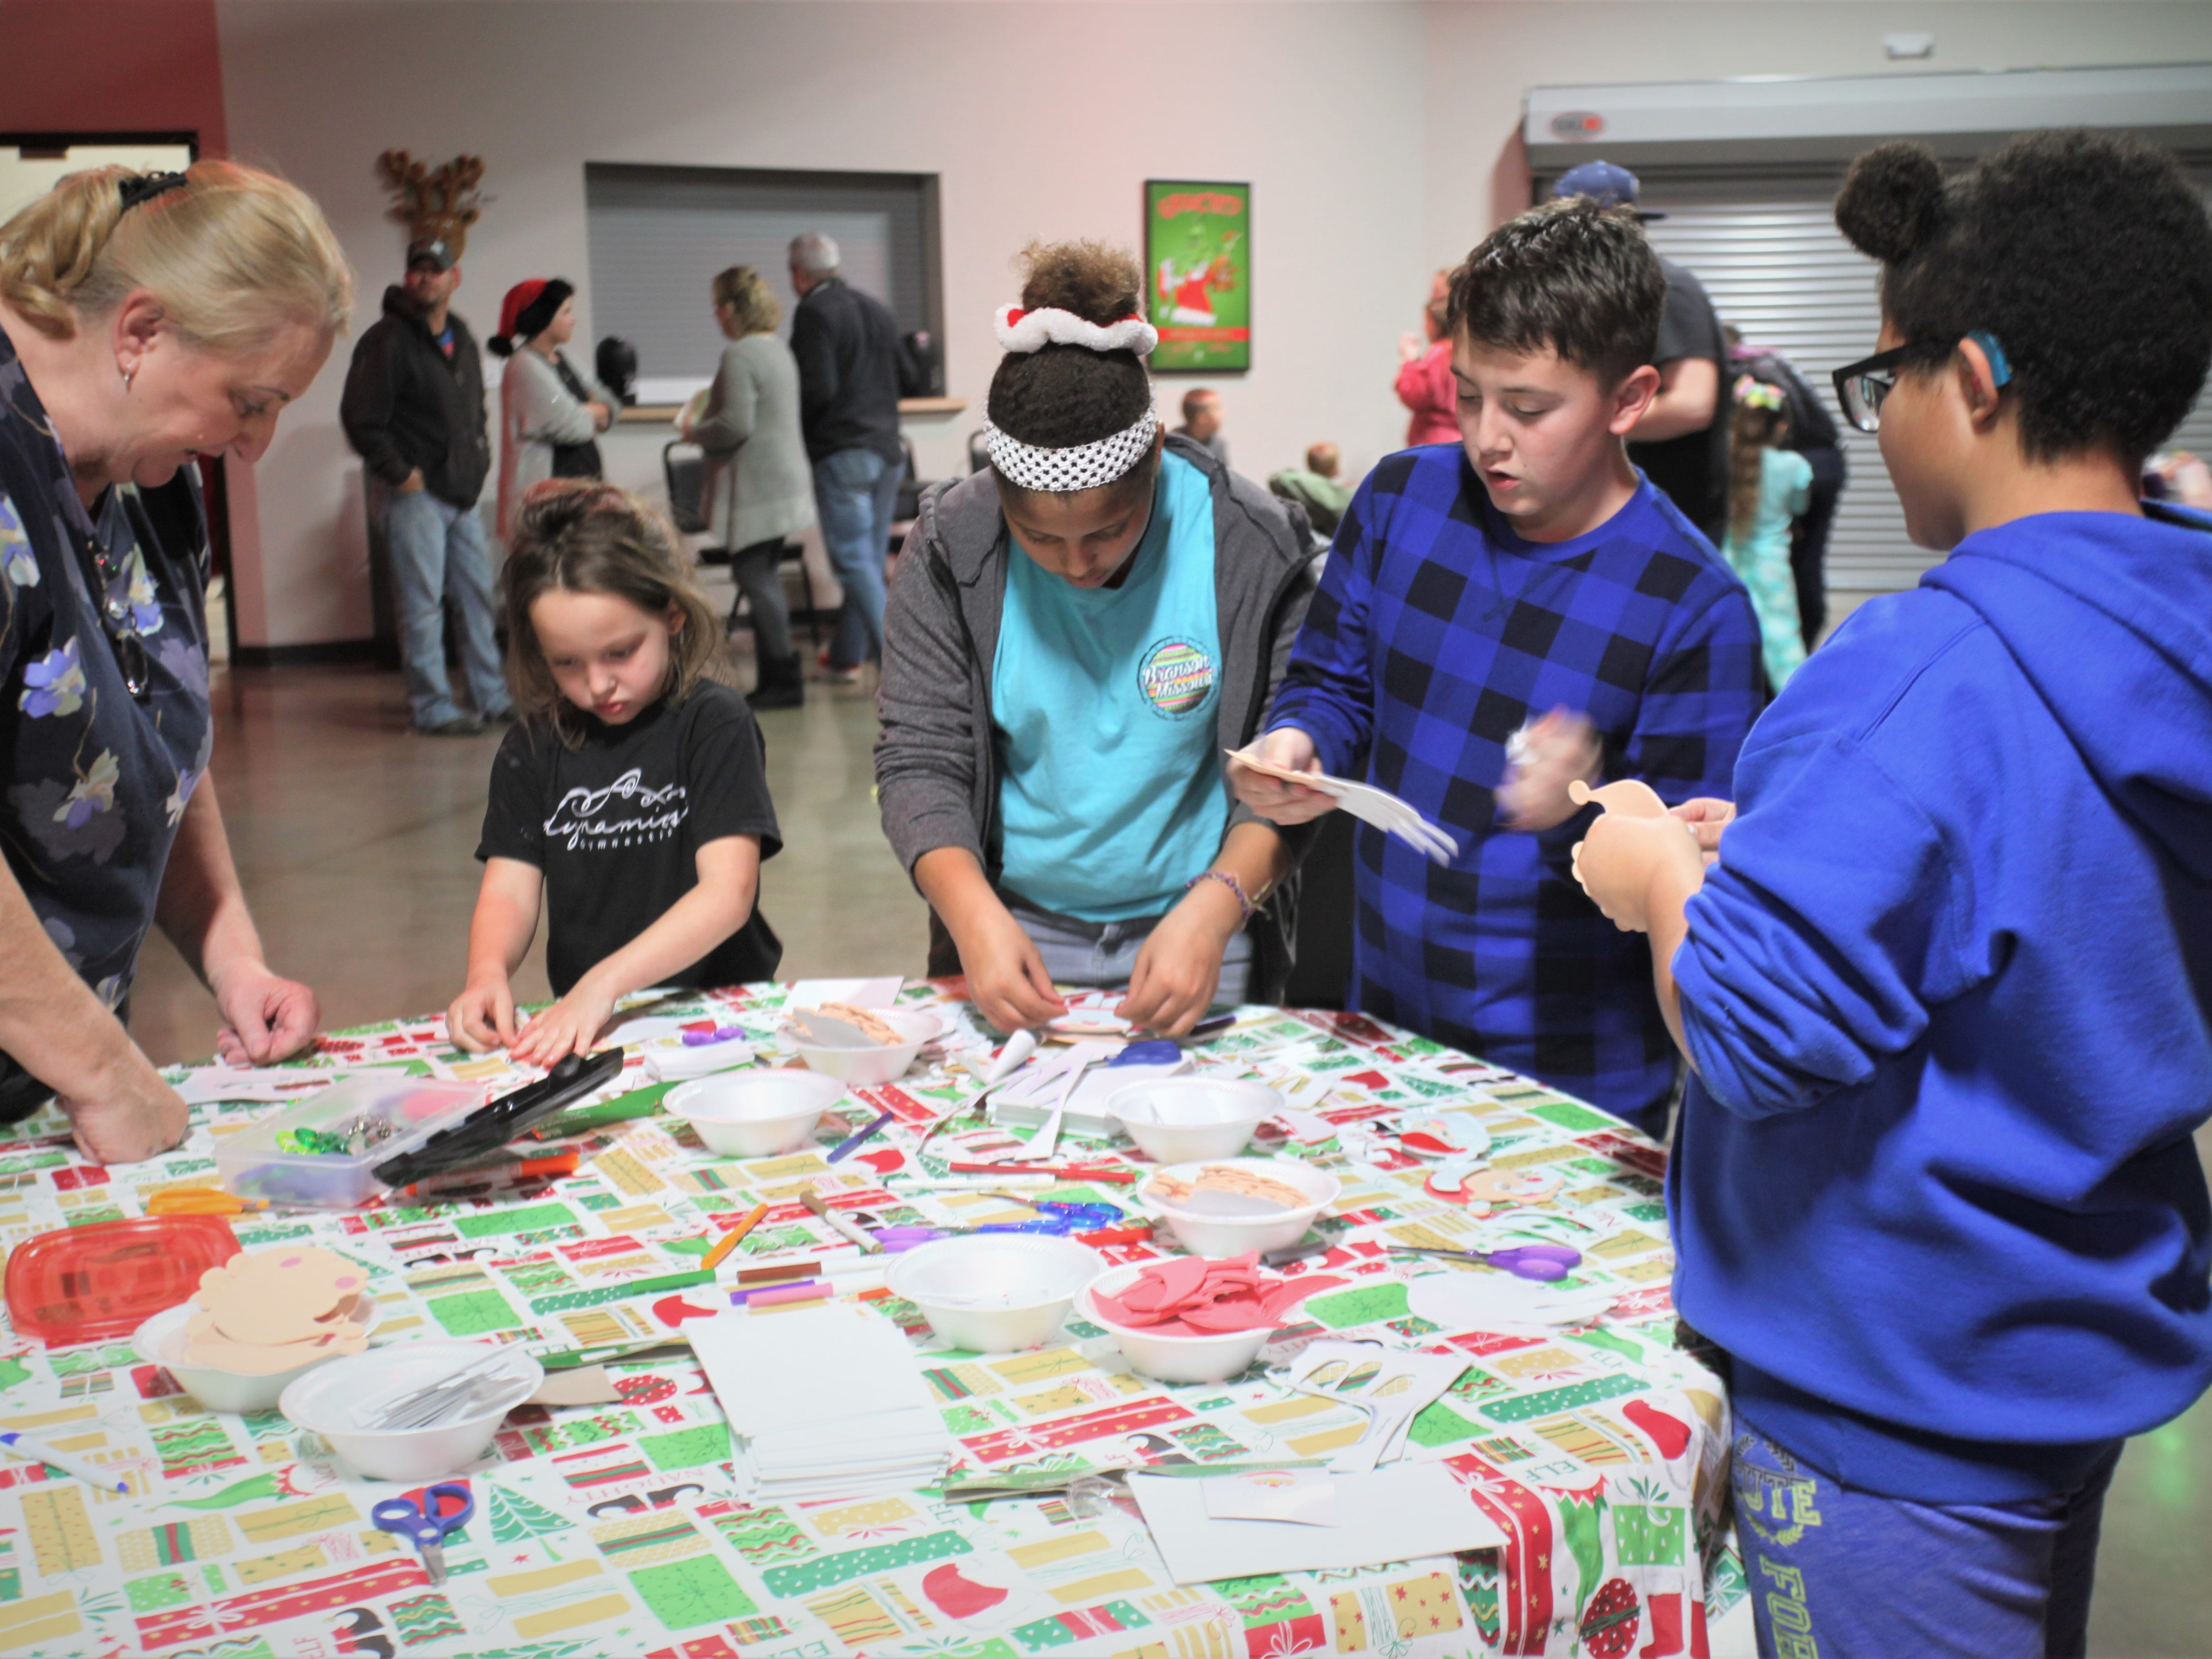 """Children complete crafts before a viewing of """"How the Grinch Stole Christmas"""" at Jesus Was Homeless Dec. 19."""